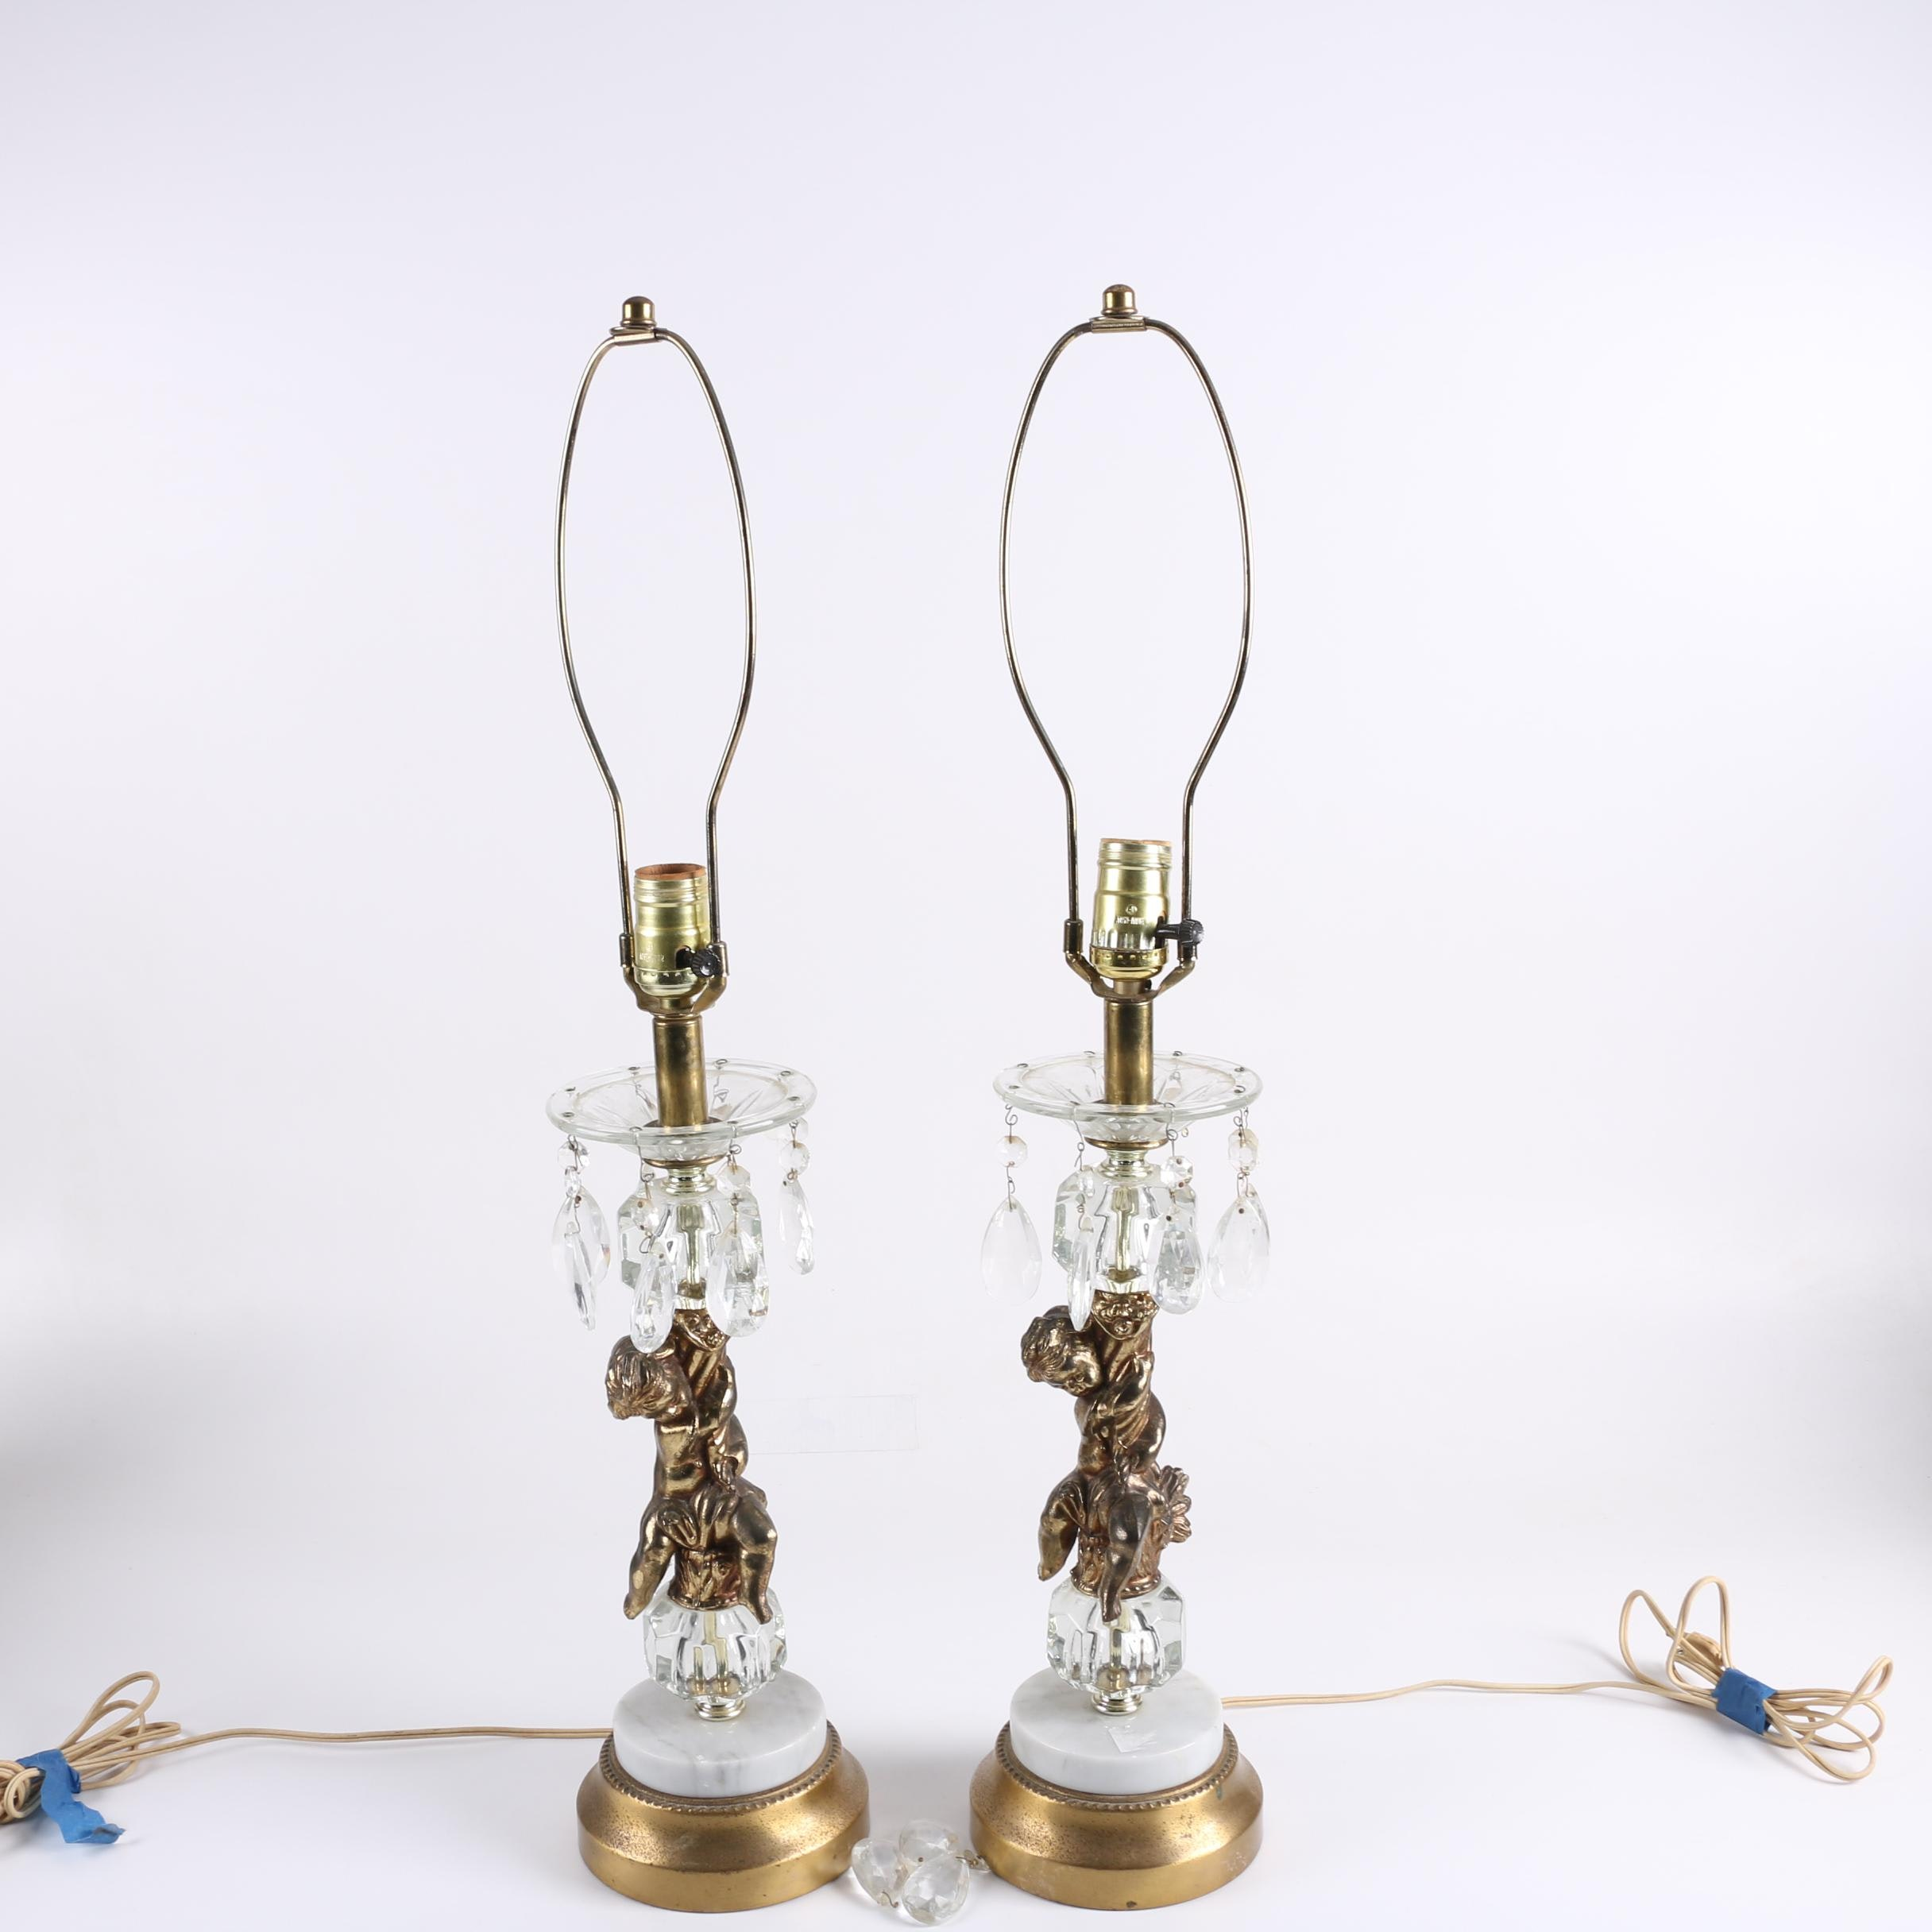 Pair of Vintage Candlestick Style Table Lamps with Ormolu Cherubs and Prisms